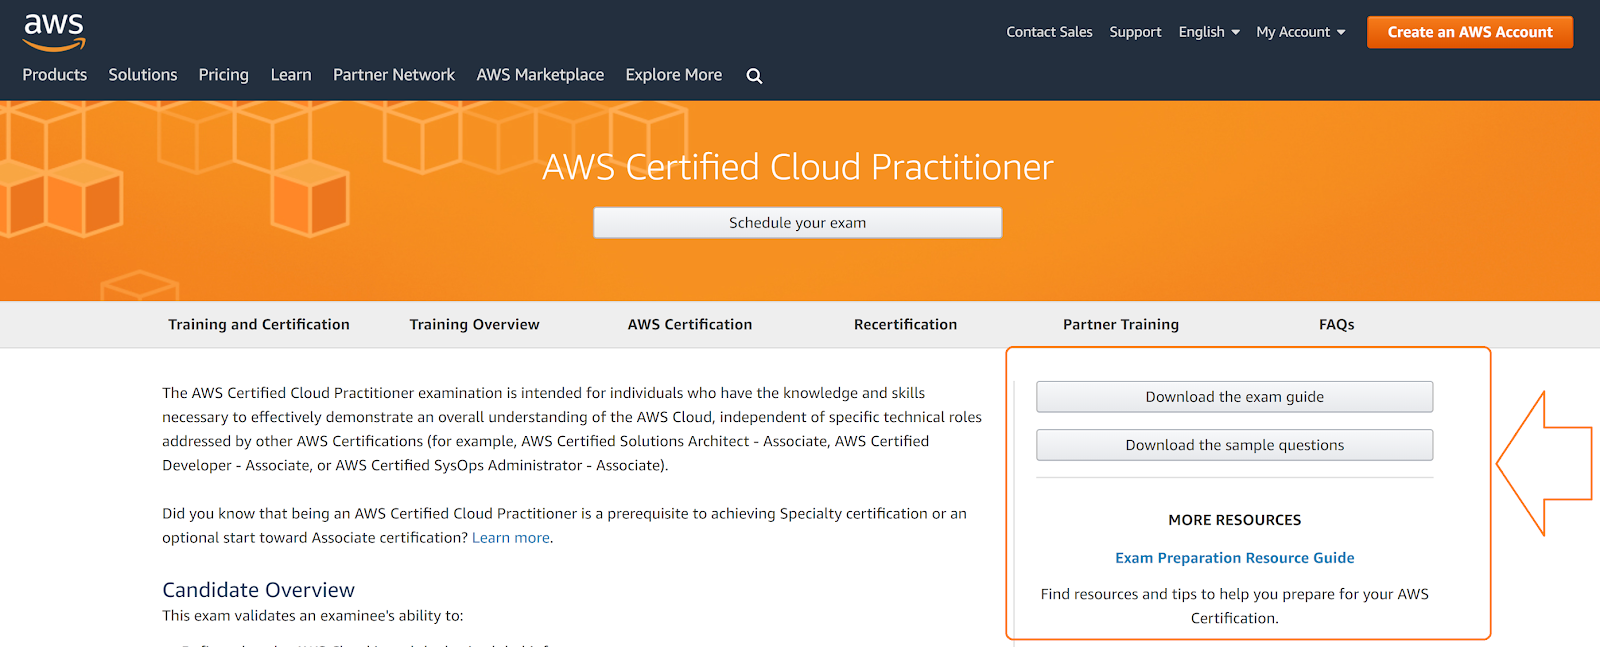 Virtualization The Future: AWS Certified Cloud Practitioner Exam